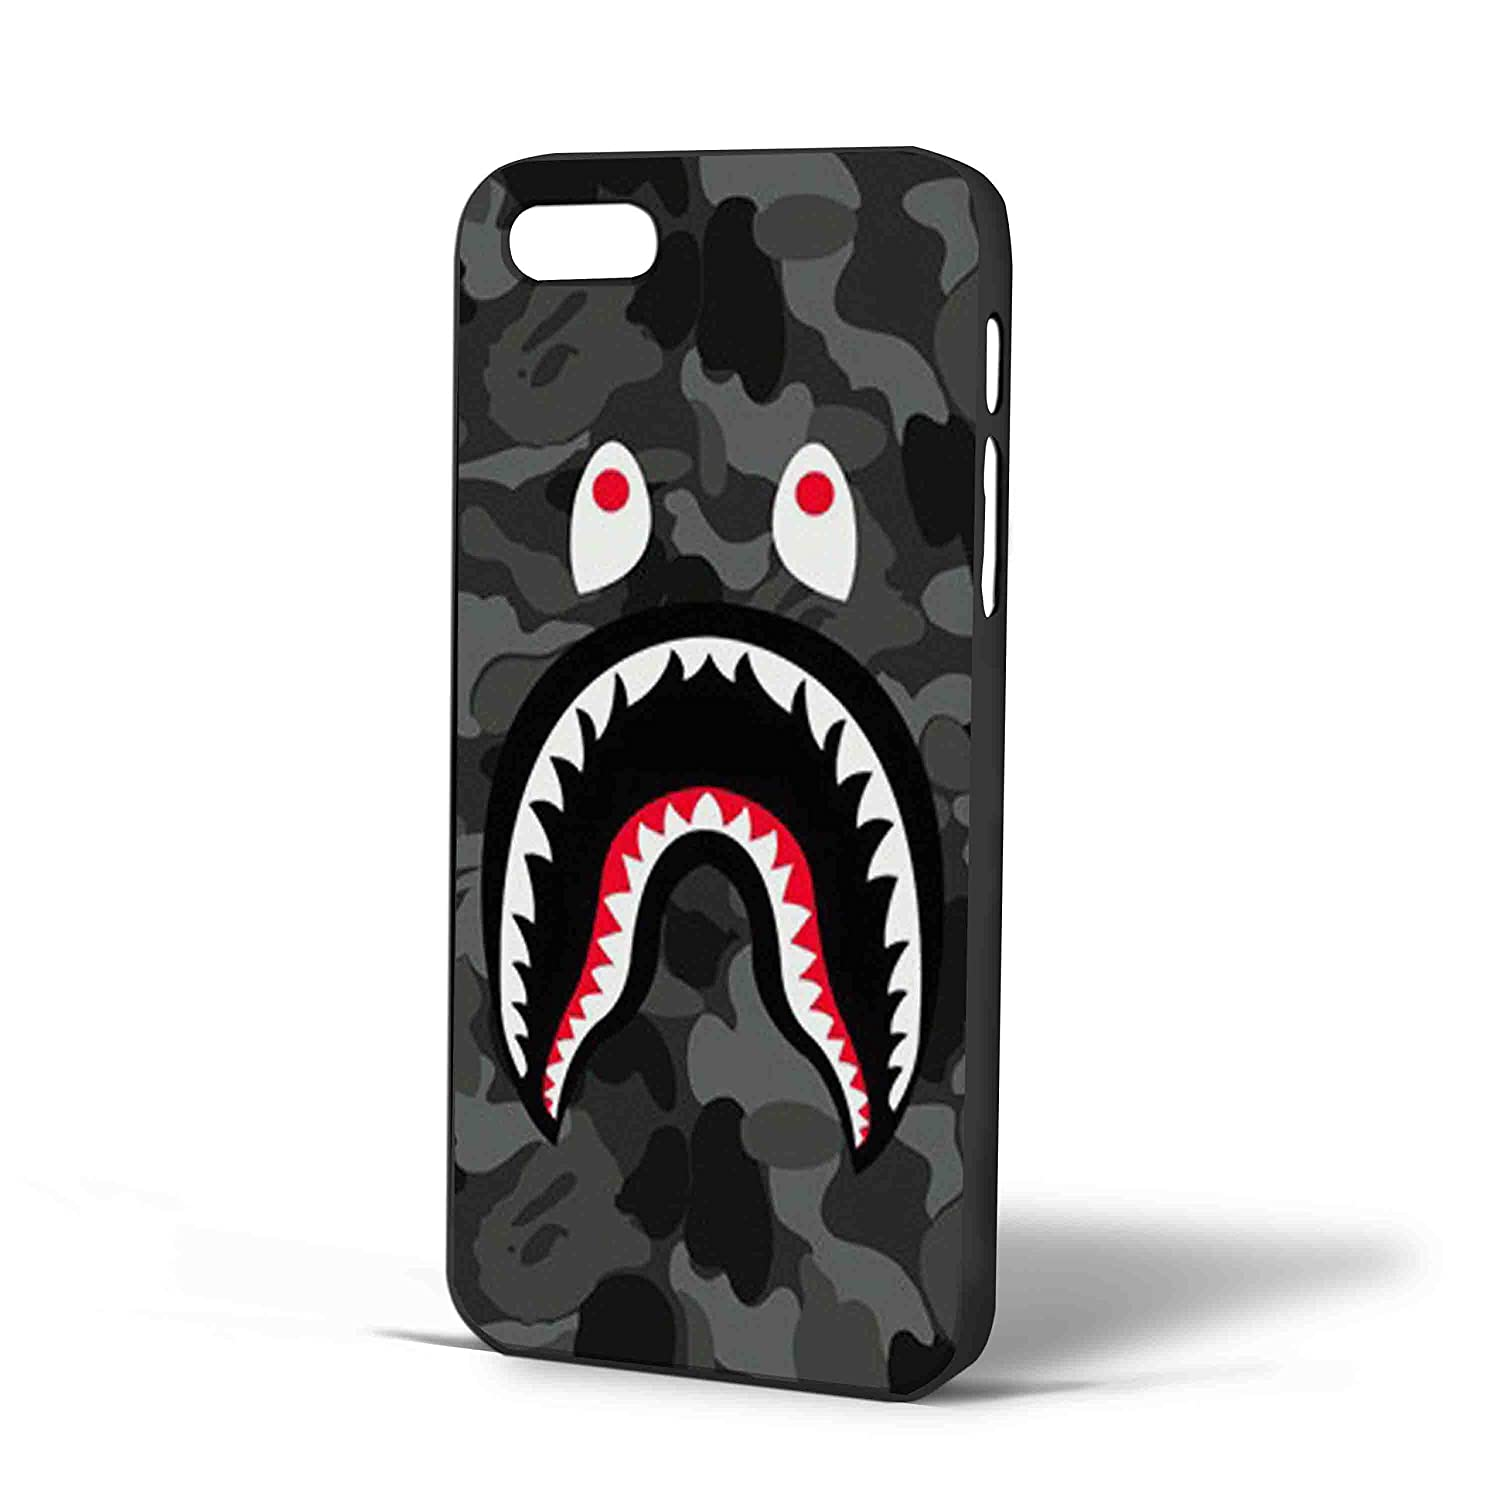 Bape Shark Black Army Pattern for funda Iphone Case funda (funda Iphone 6s plus Black): Amazon.es: Electrónica